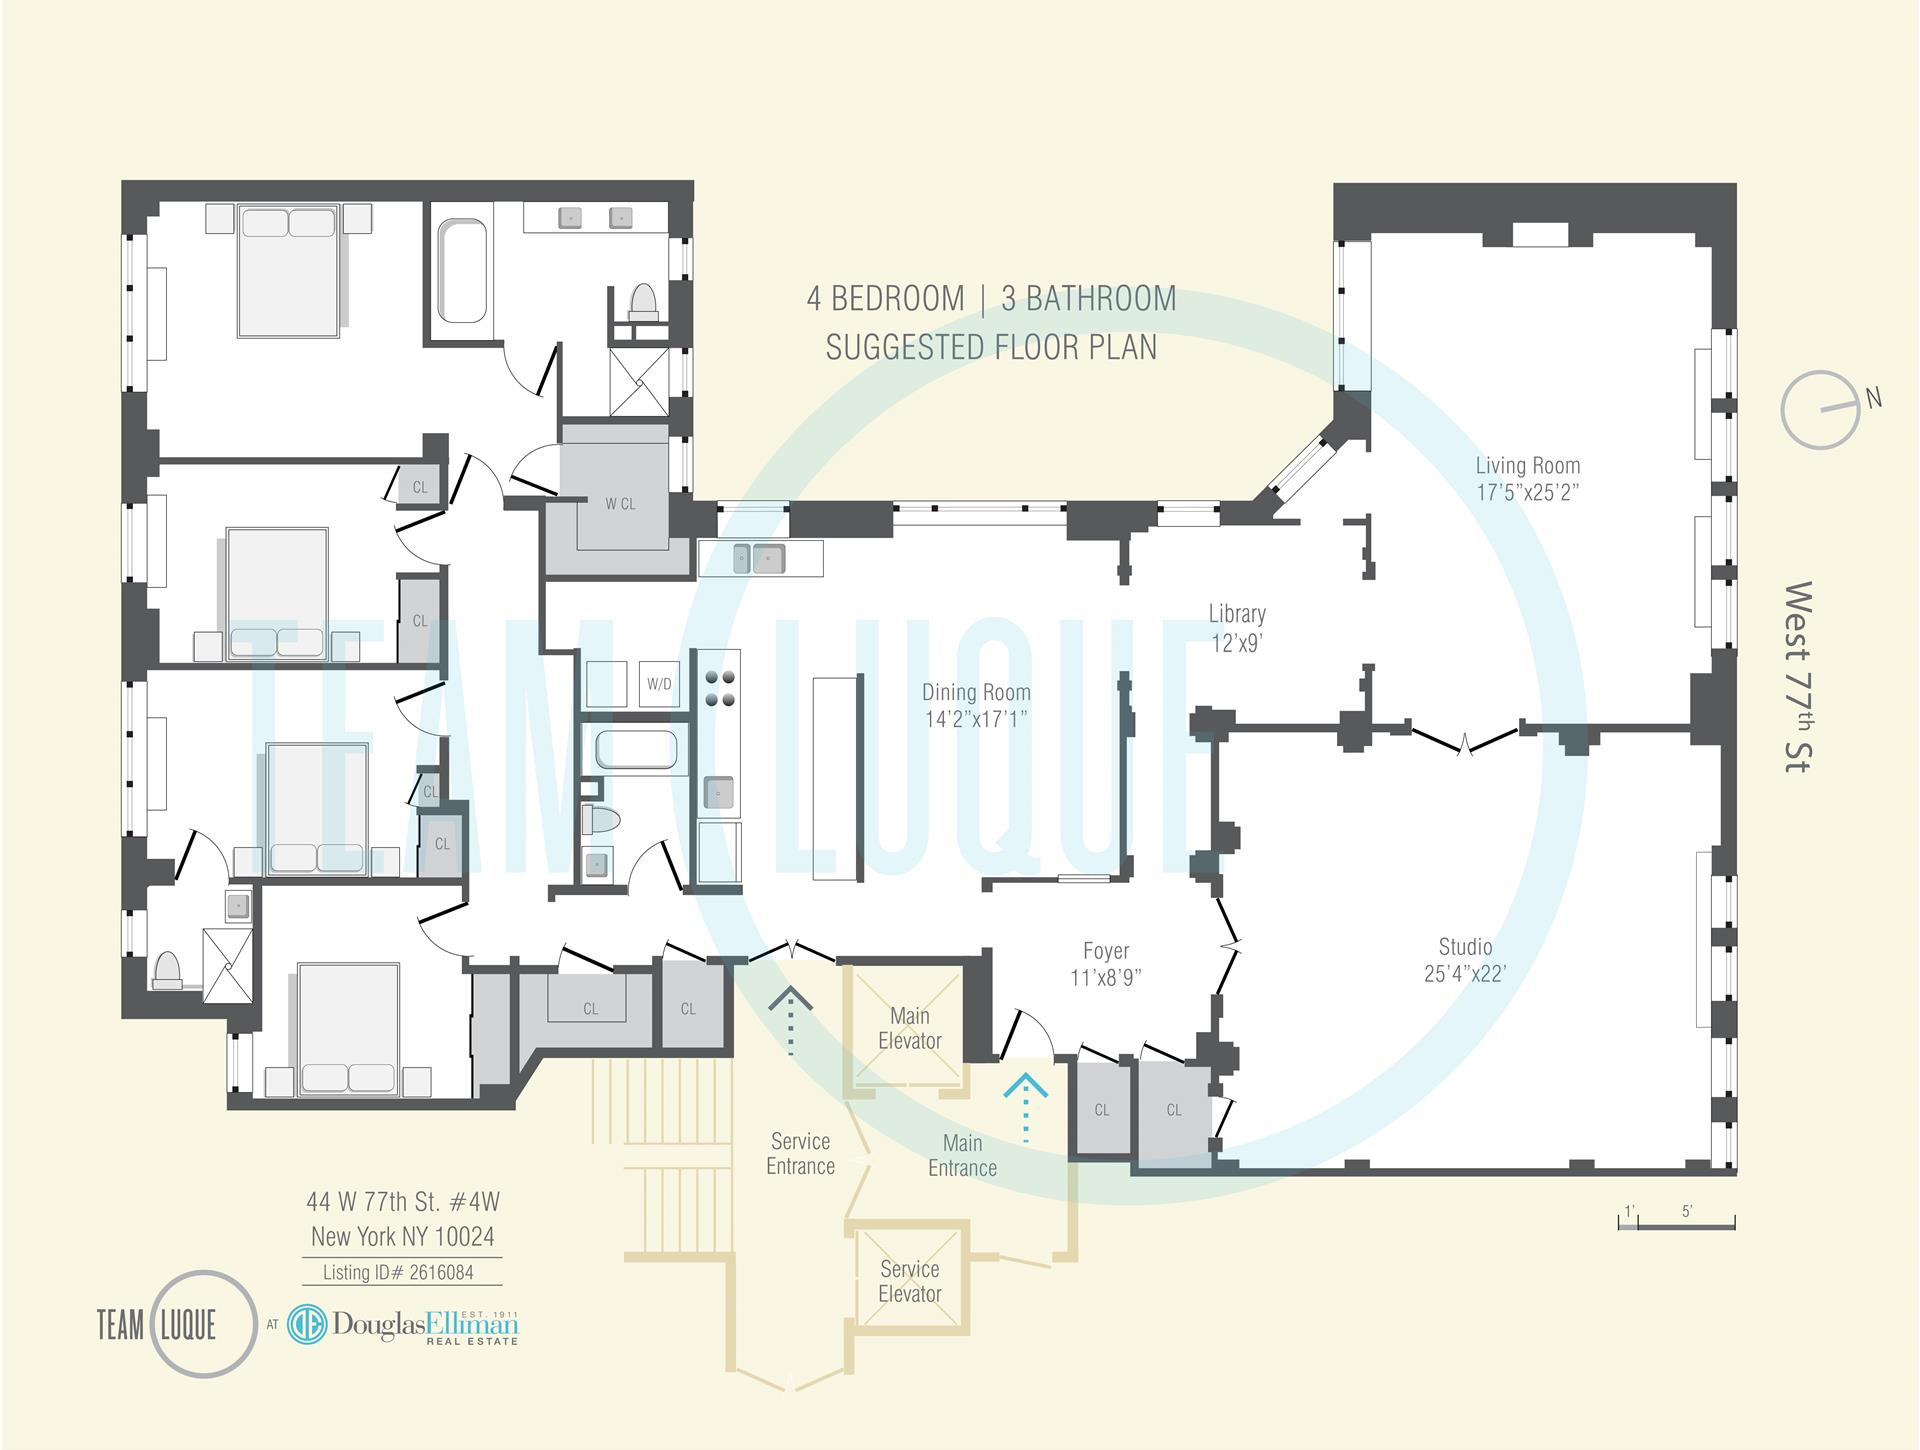 Floor plan of 44 West 77th St, 4W - Upper West Side, New York